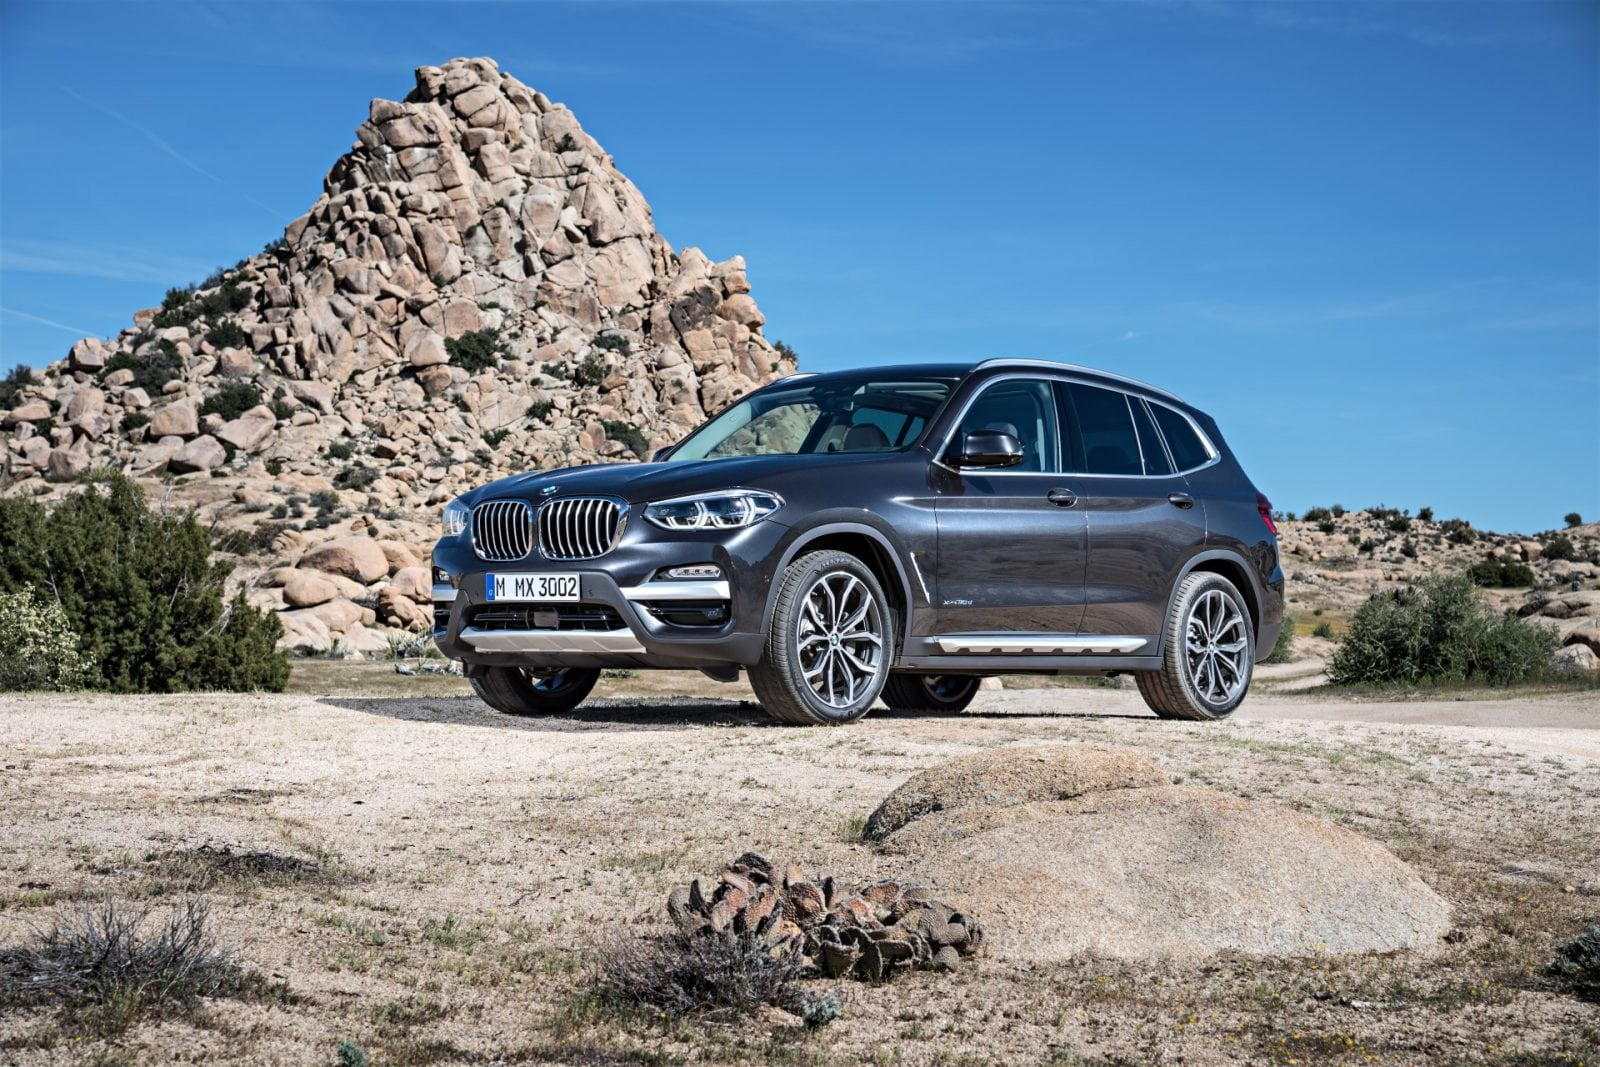 BMW X3 G01 2018 xDrive30d xLine Sophisto Grey Metallic With Leather Vernasca Mocca